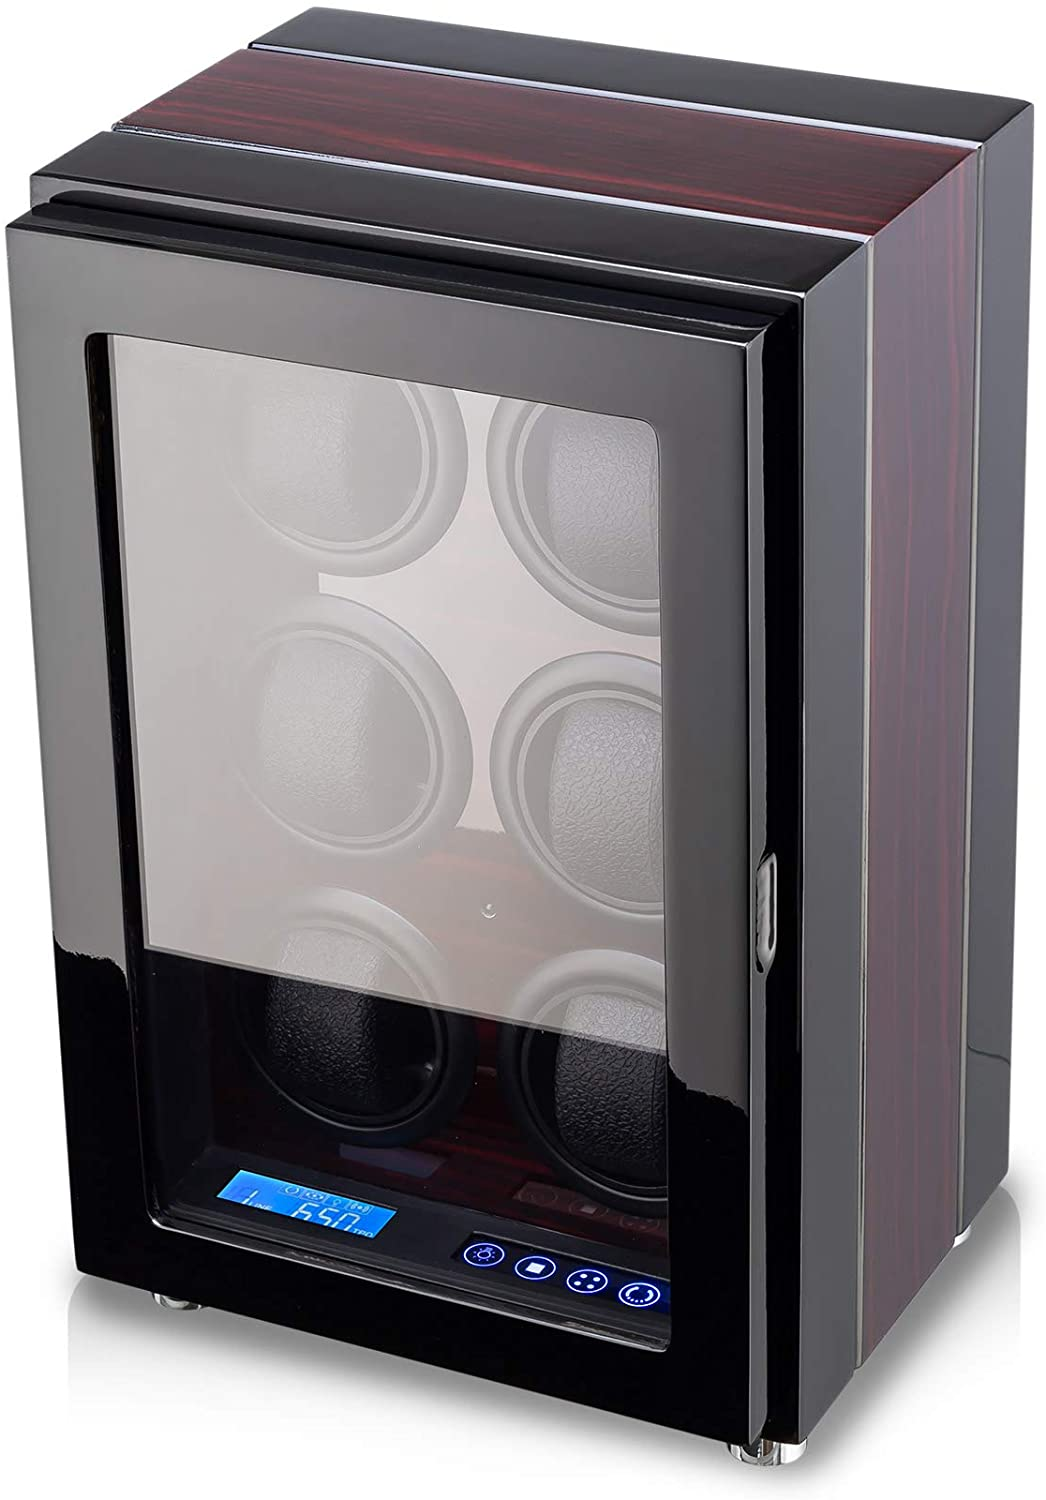 Watch Winder for 6 Watches with LED Backlight and Remote Control